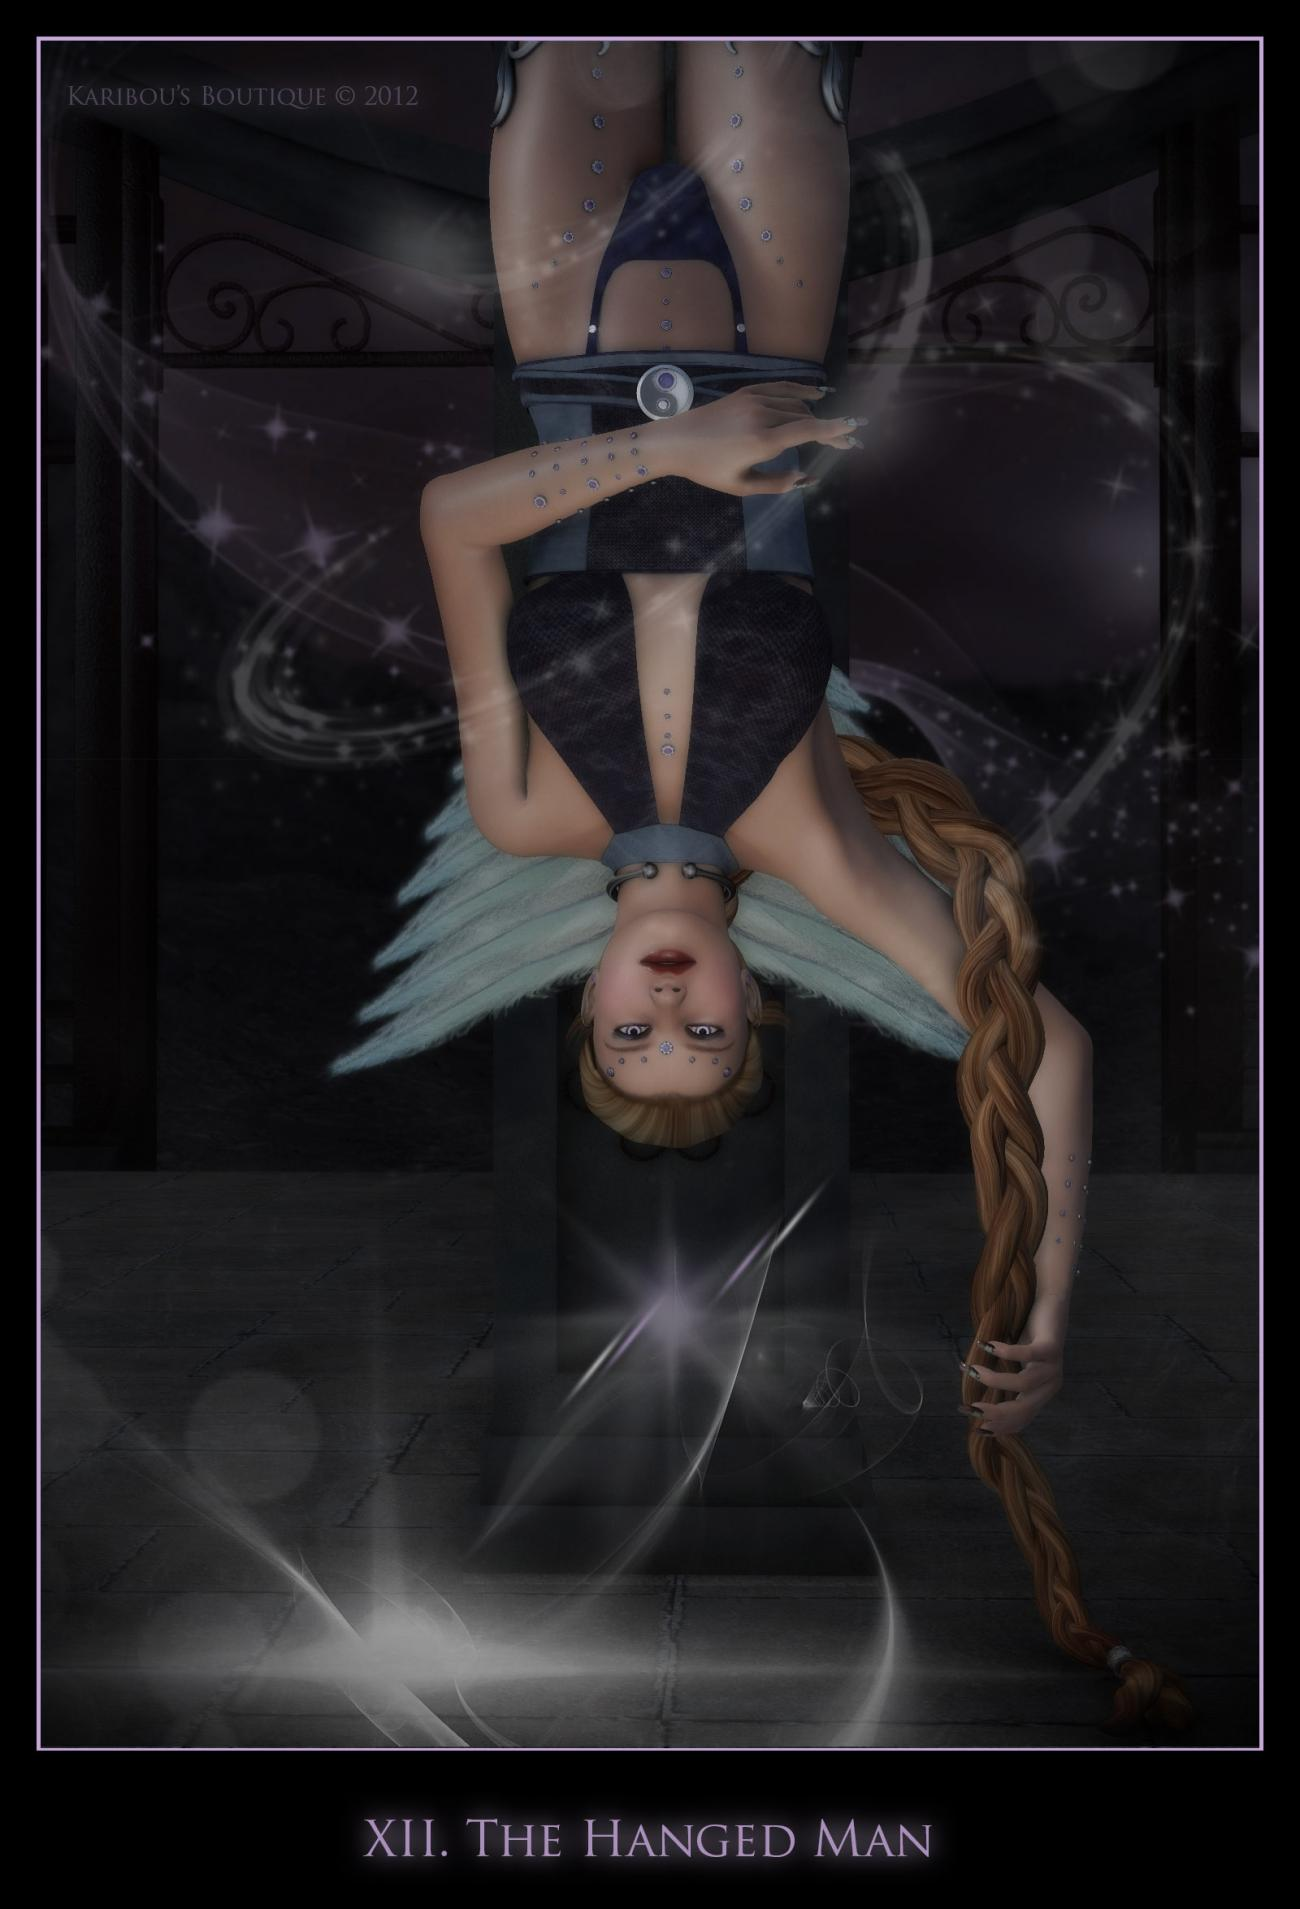 The Hanged Man by karibousboutique